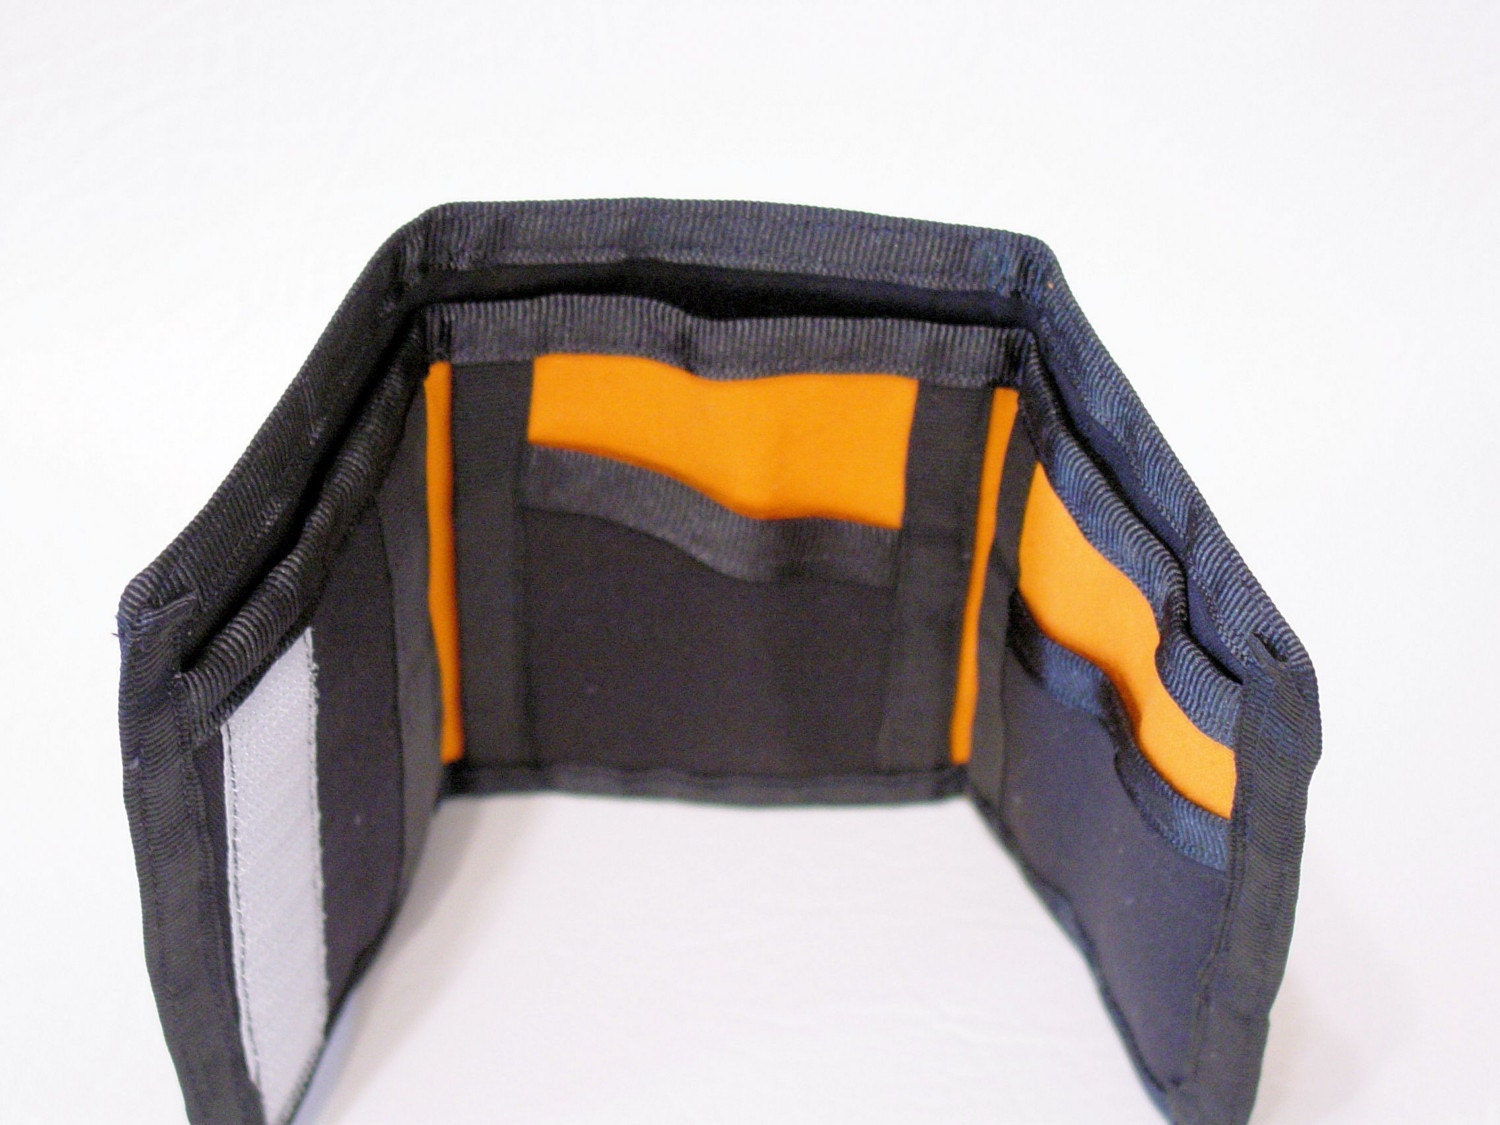 Sport trifold wallet for men and boys by cajunbaglady on Etsy